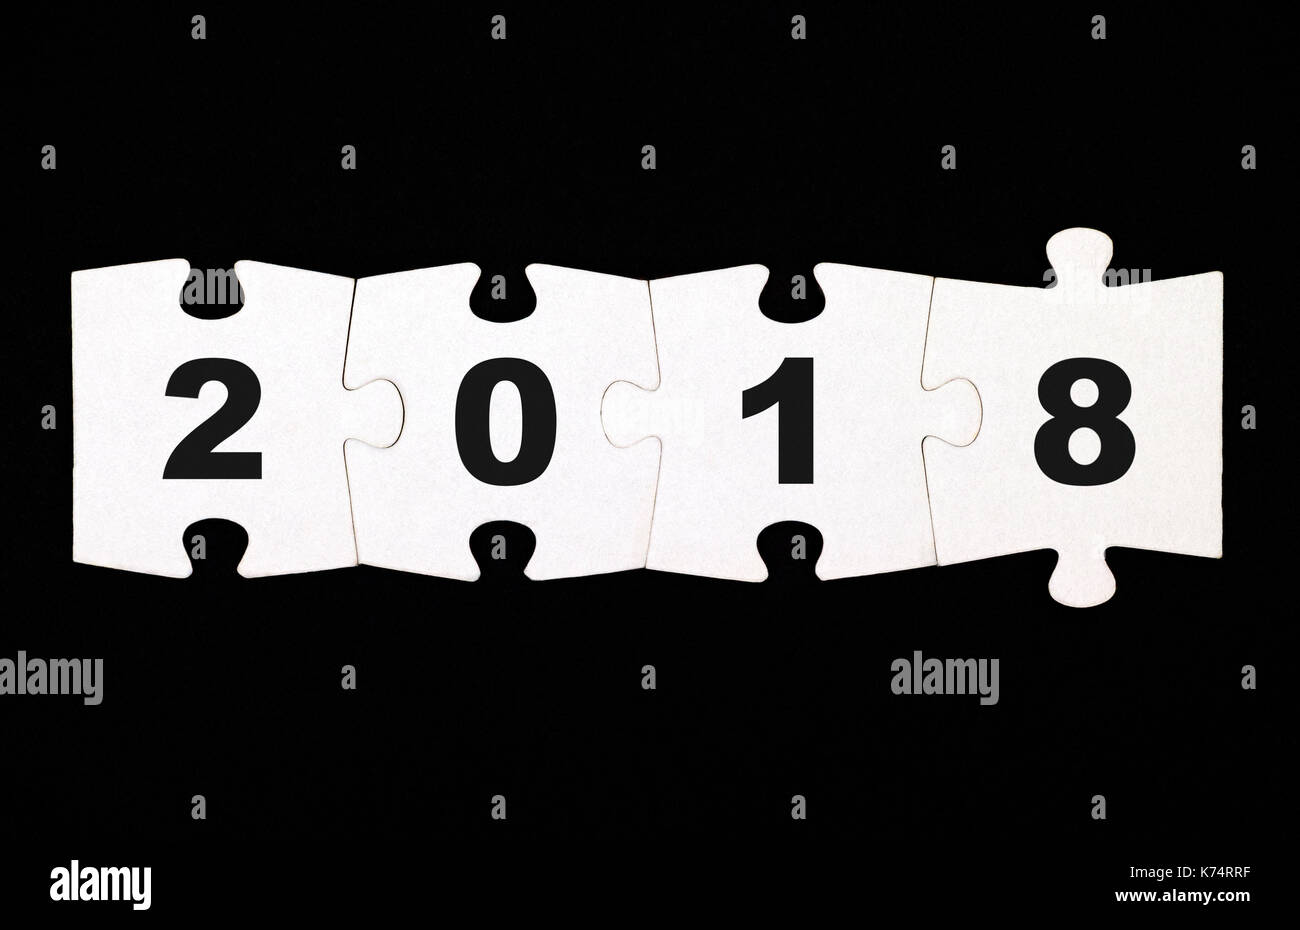 Four pieces of puzzle with numbers 2 0 1 8 are connected together on black background Stock Photo